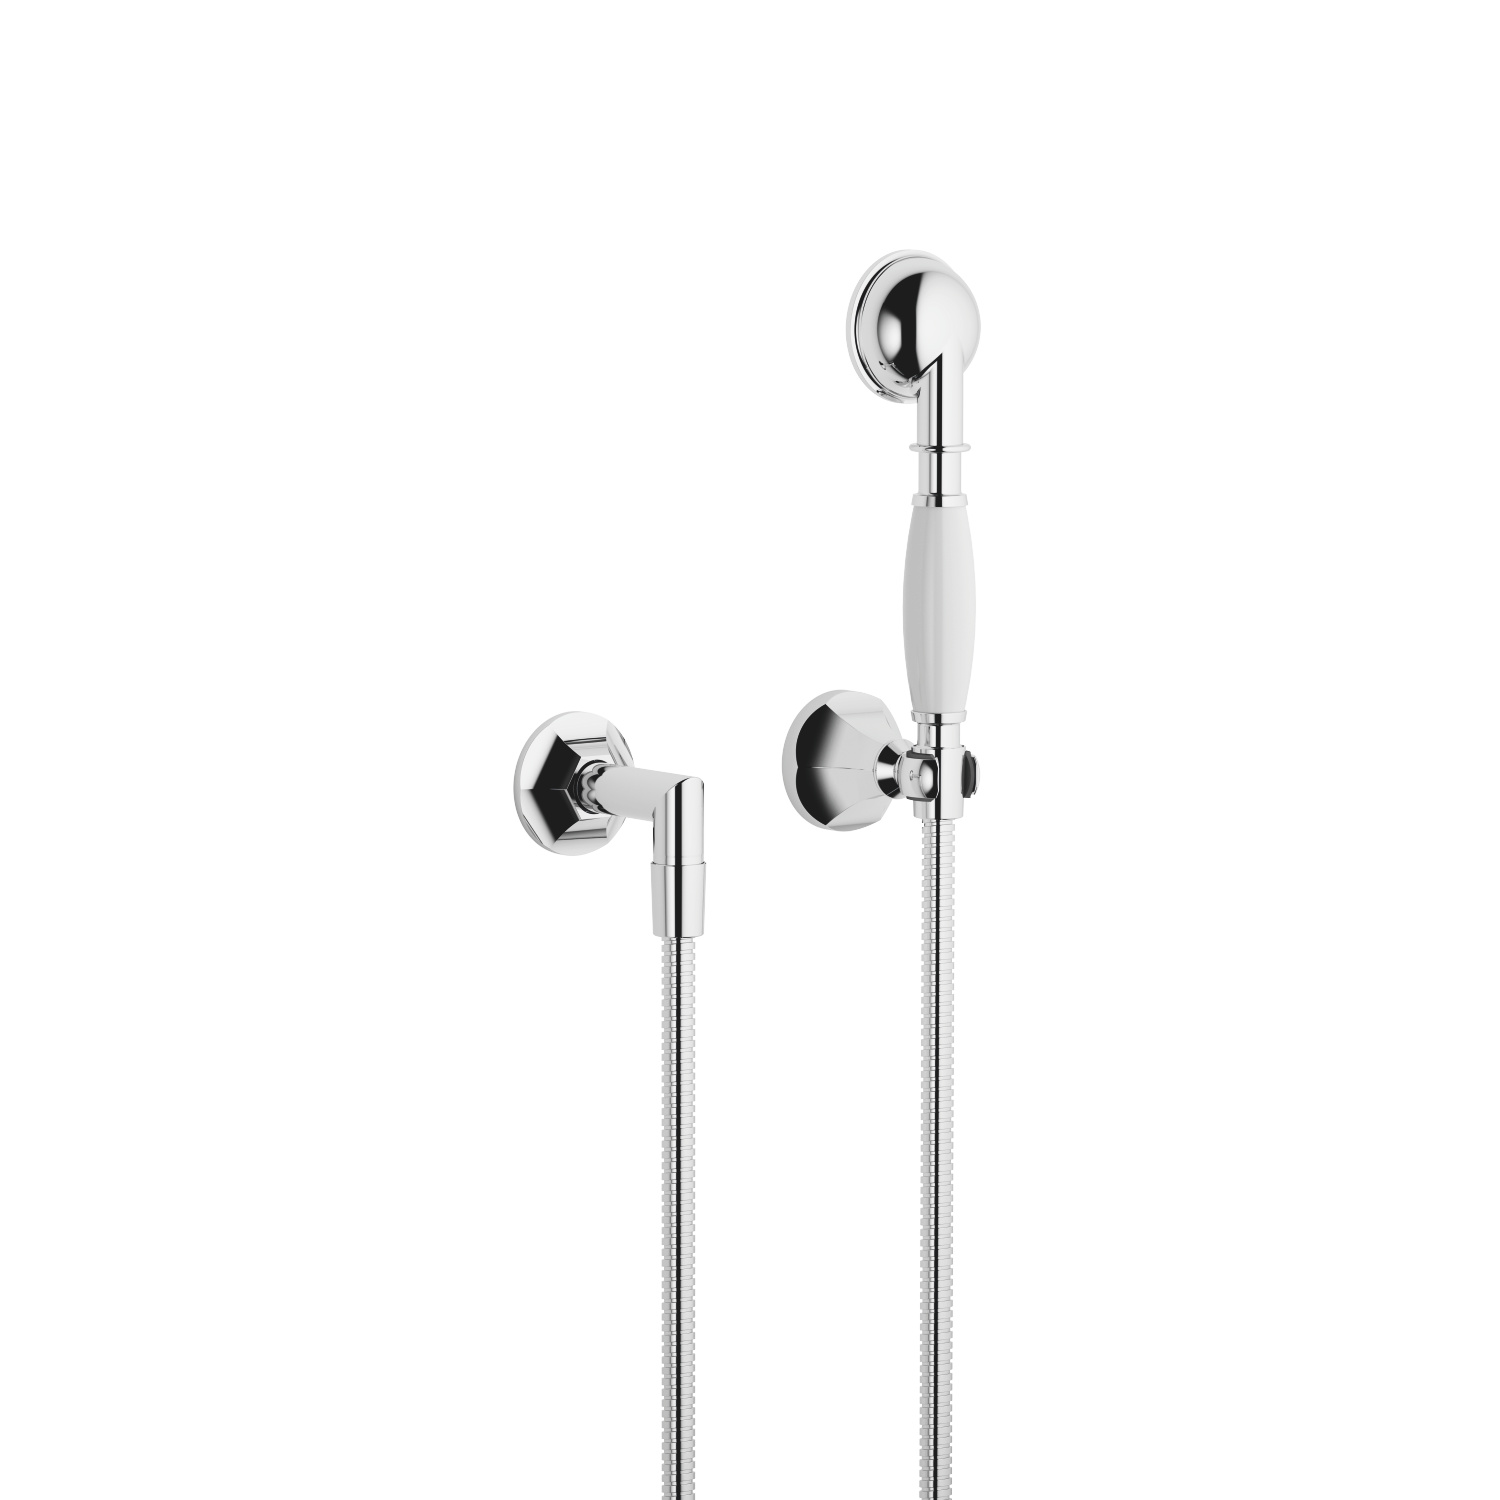 Hand shower set with individual rosettes - polished chrome